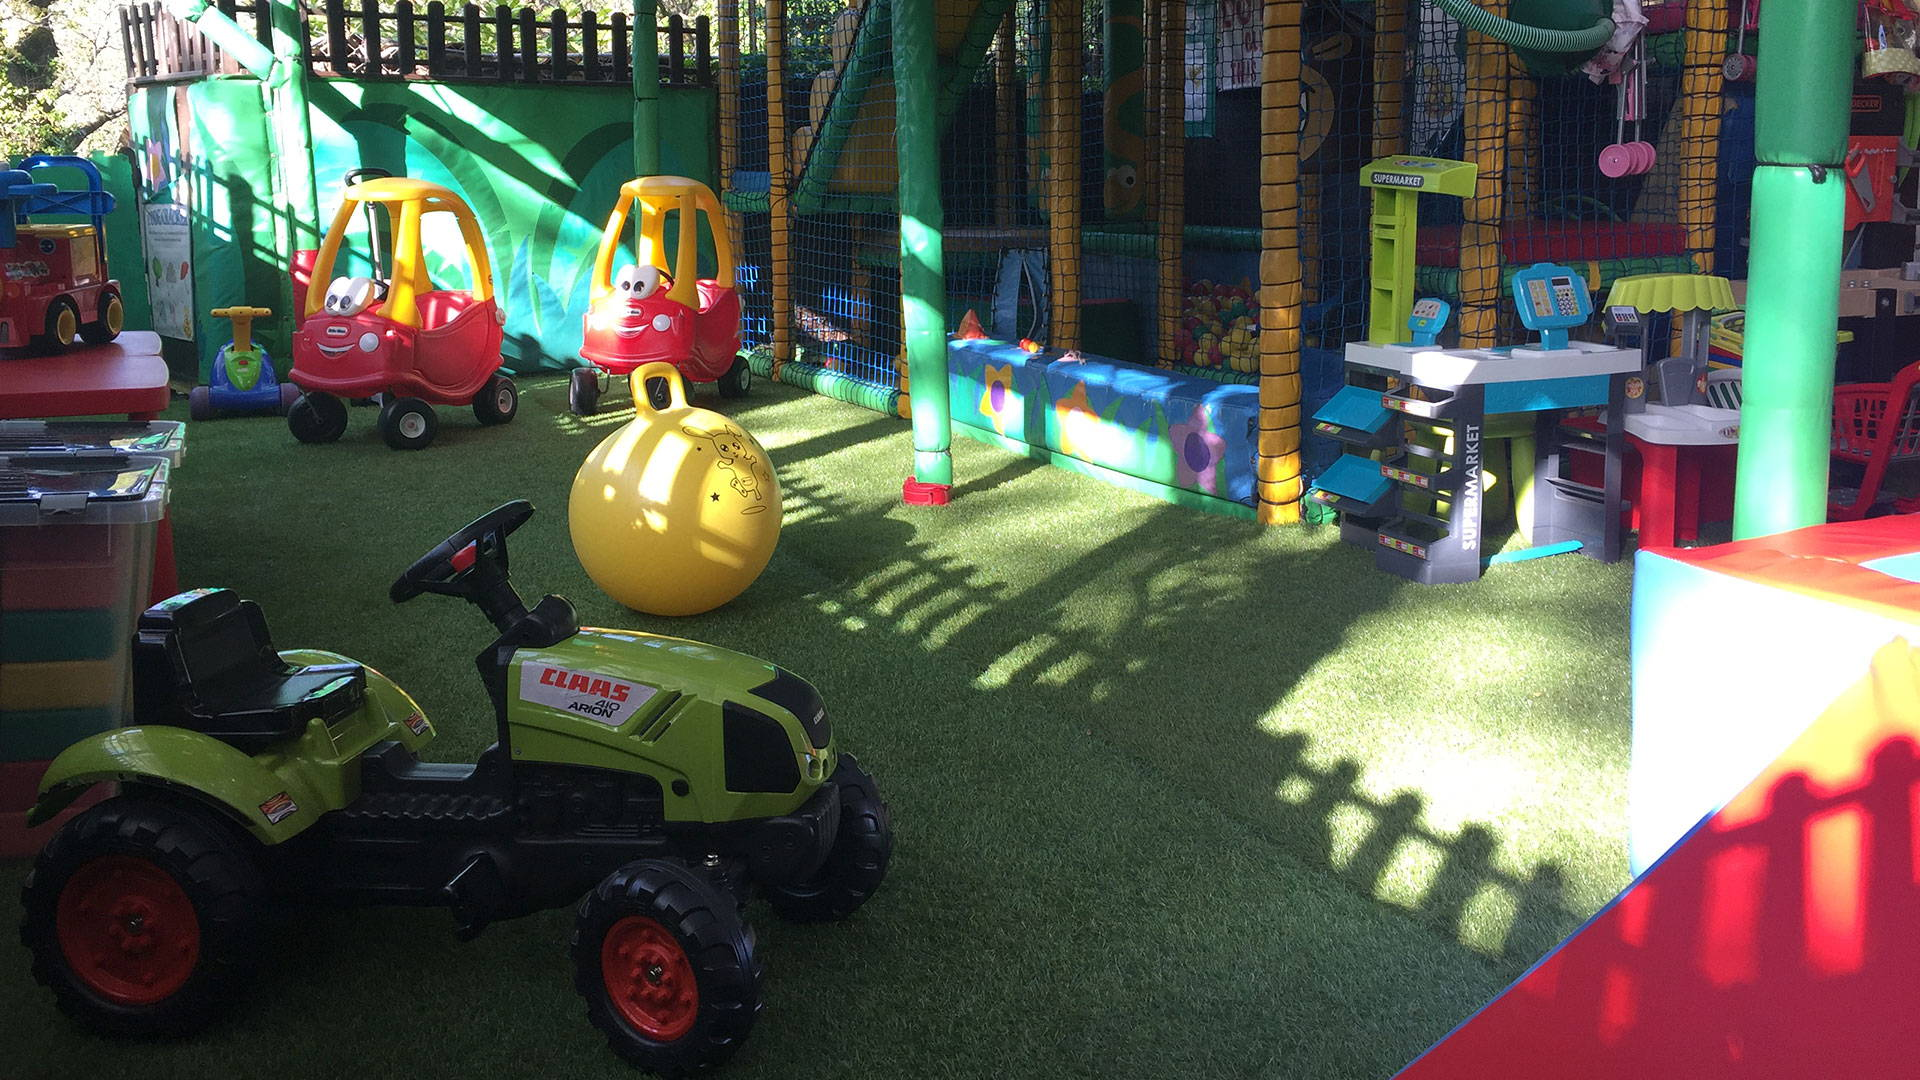 Soft play area in a child friendly gite in France